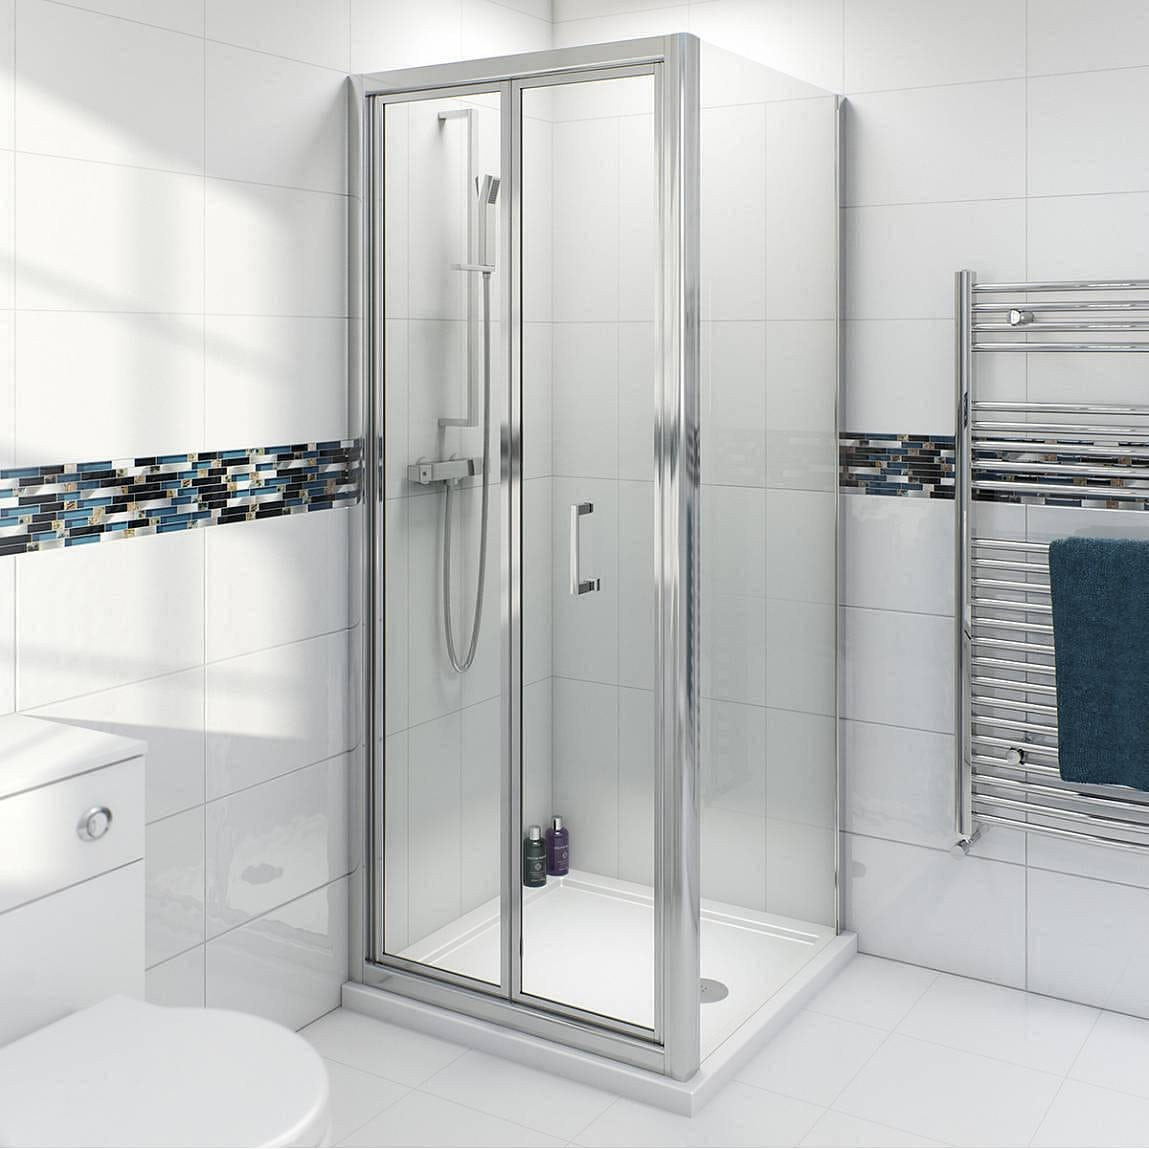 Clarity 4mm bifold shower enclosure with Simplite shower tray - Sold by Victoria Plum